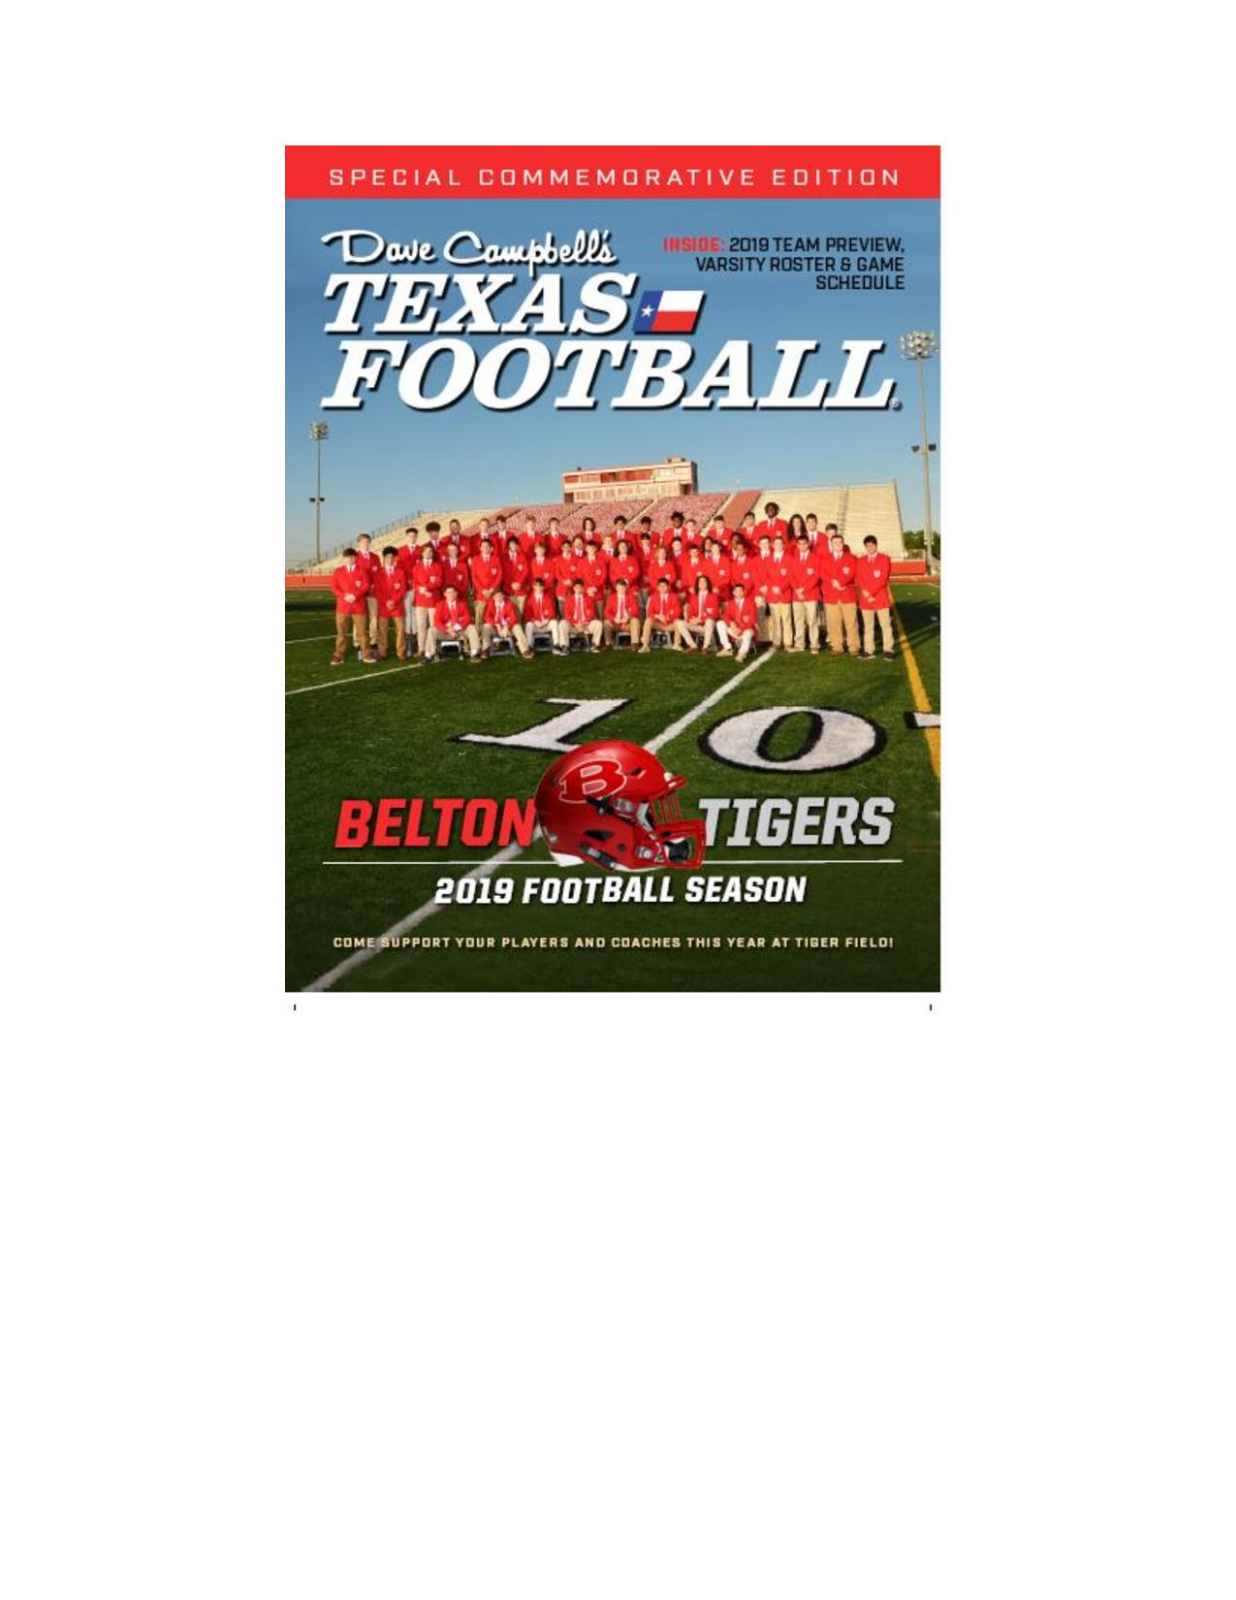 Dave Campbell Texas Football Magazine featuring your Belton Tigers